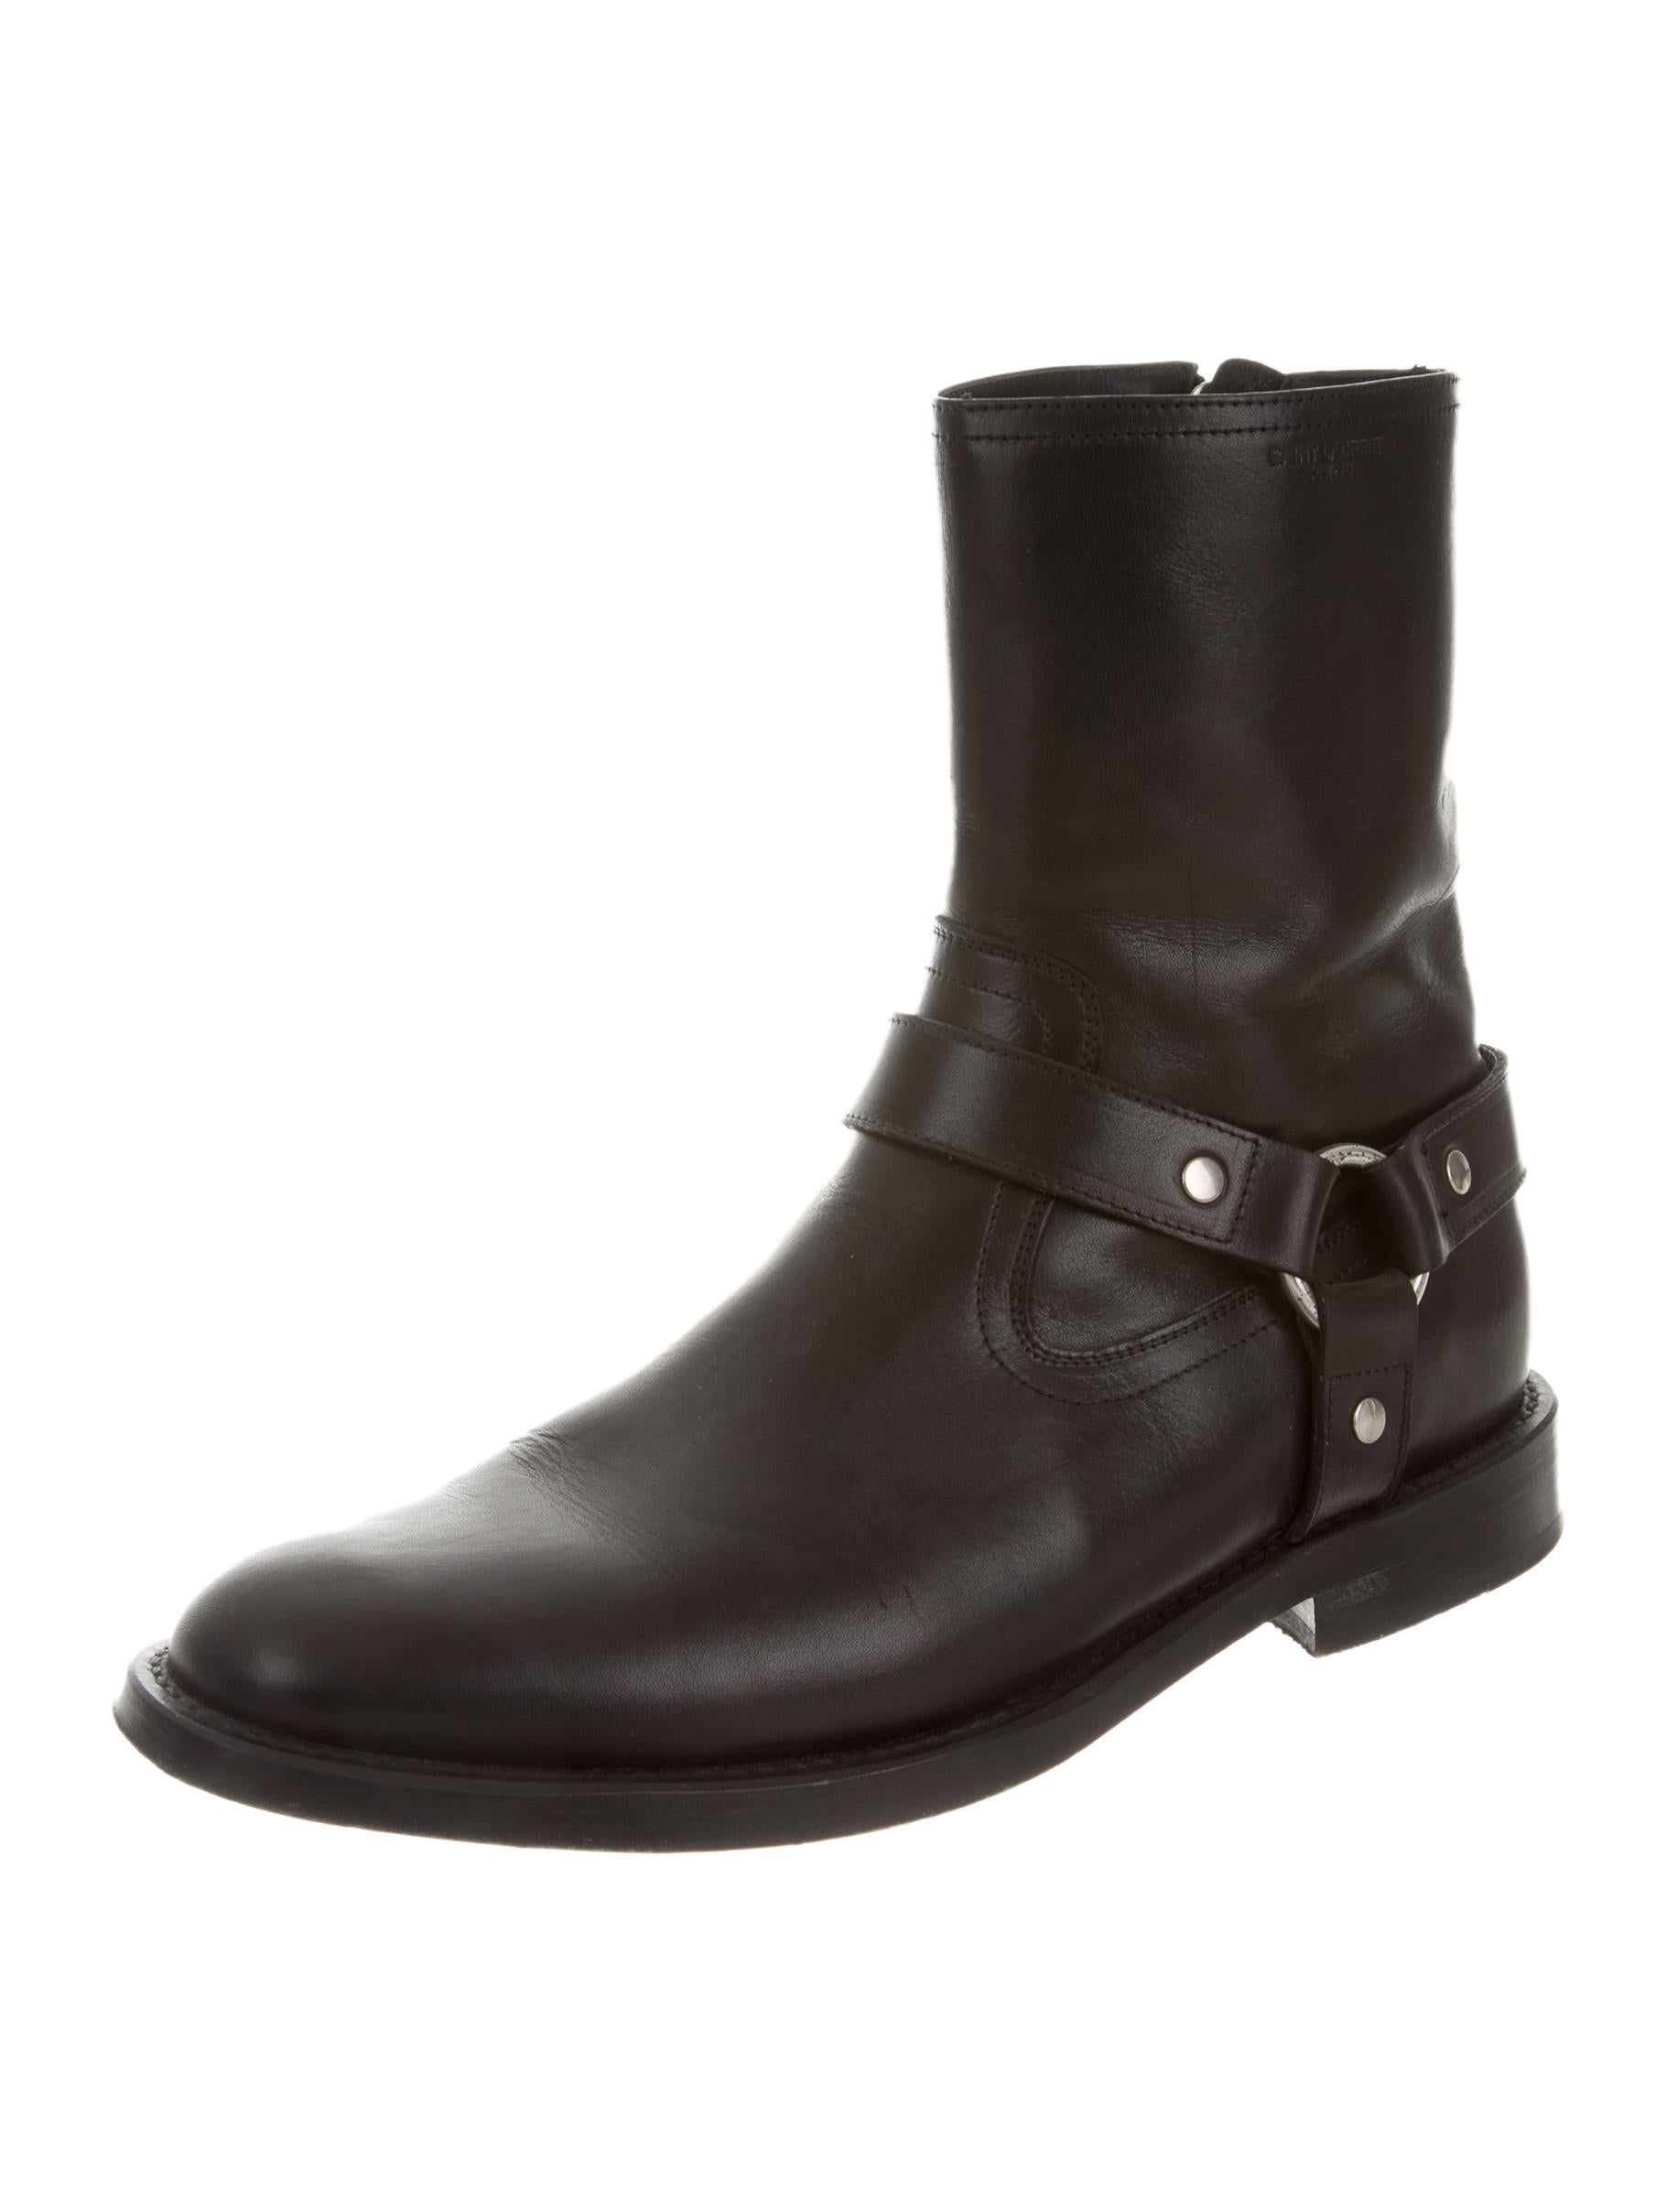 laurent leather moto boots shoes snt26337 the